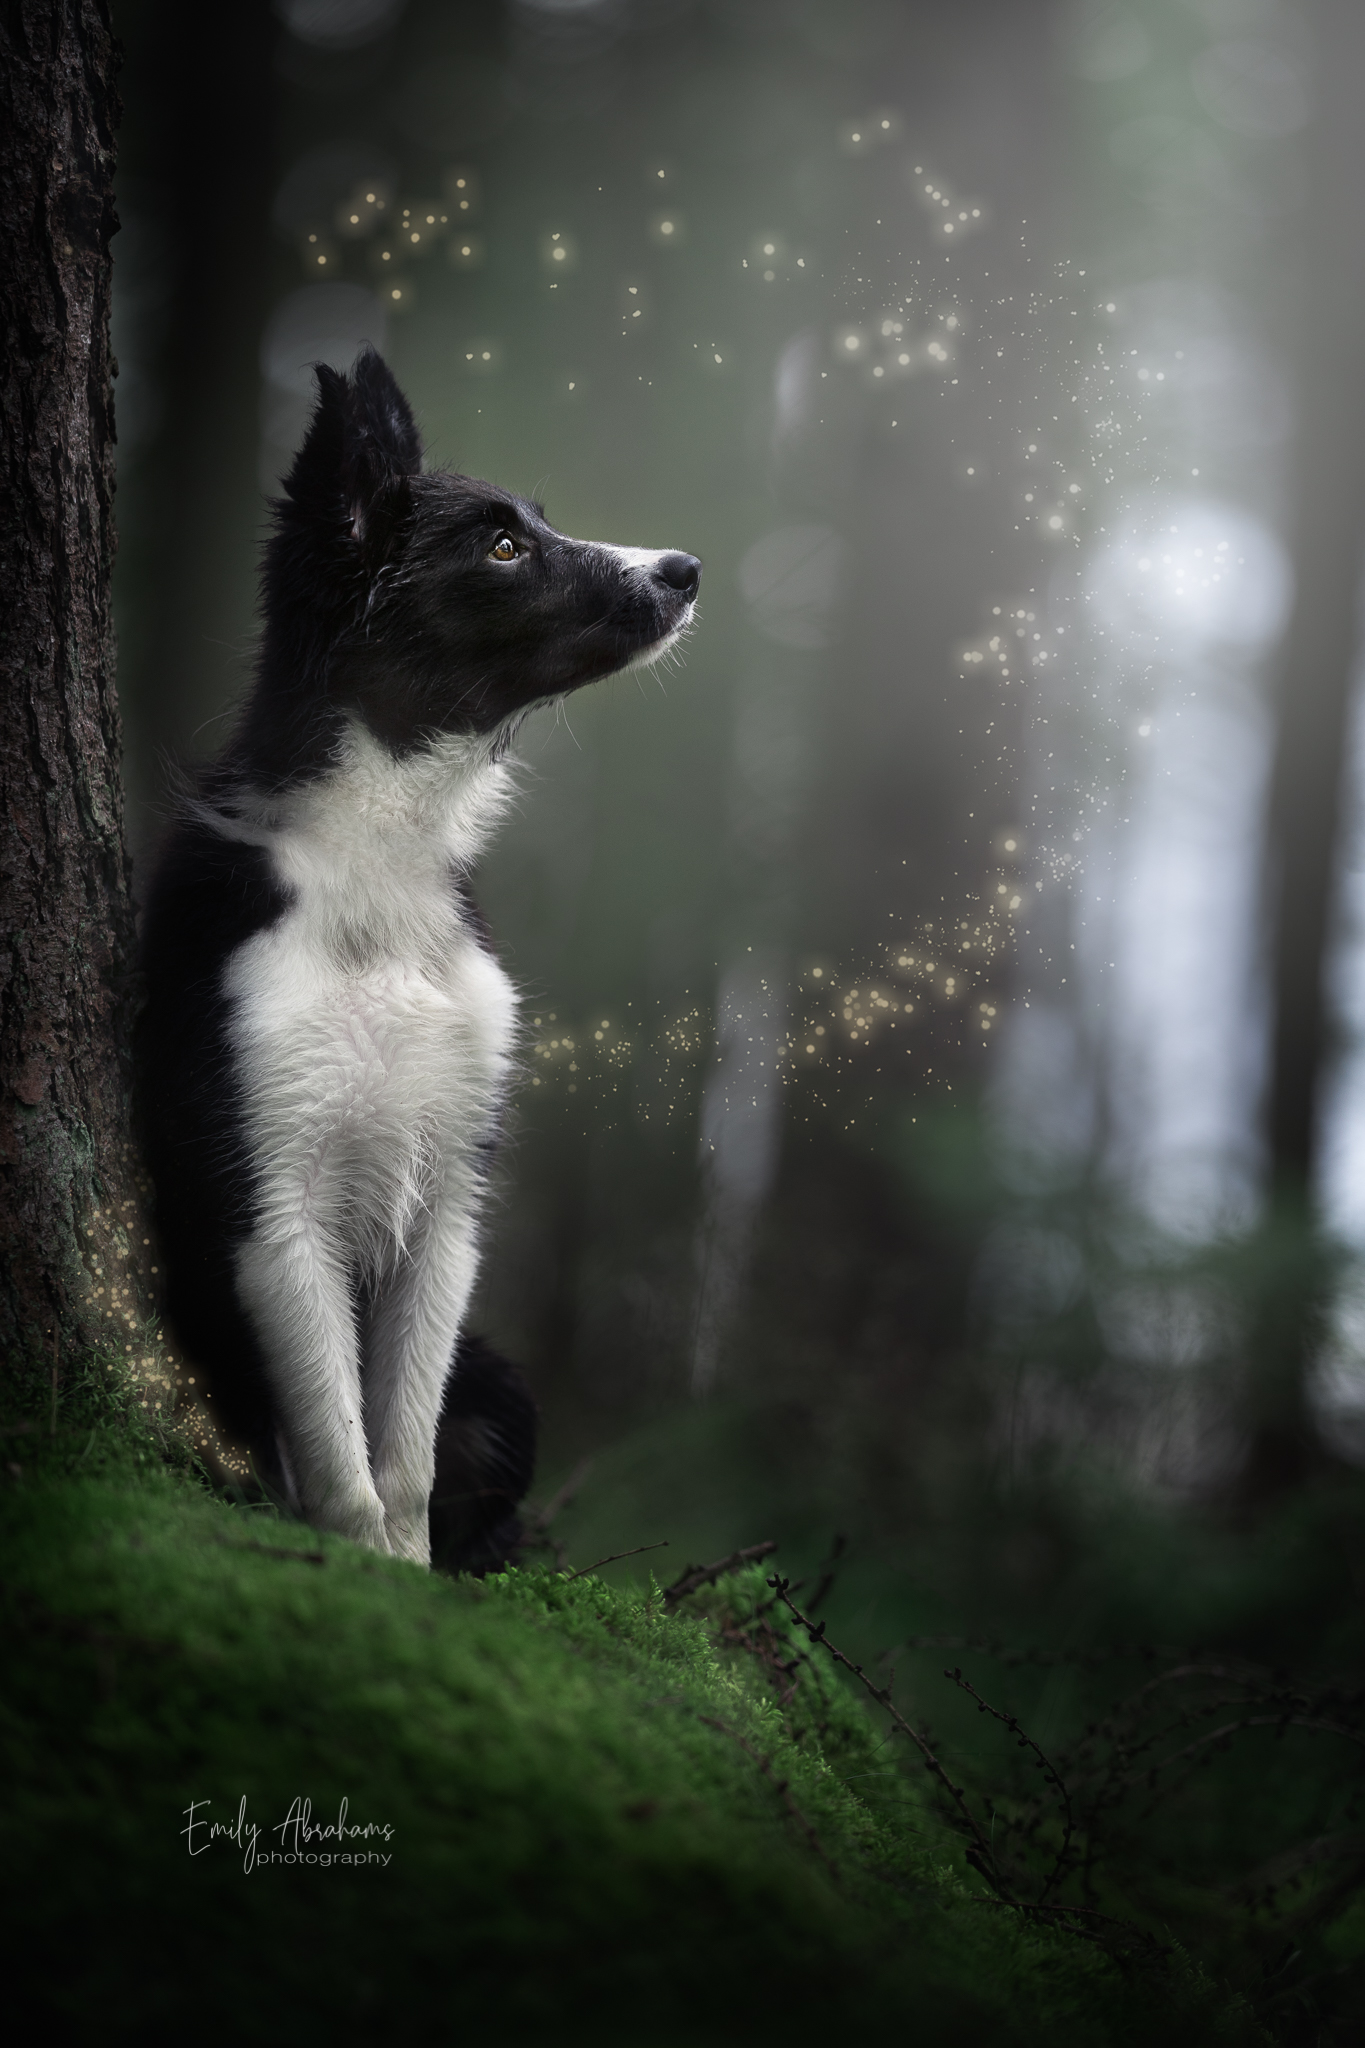 A dark and moody photo of a border collie puppy in the forest, surrounded by magical sparkles